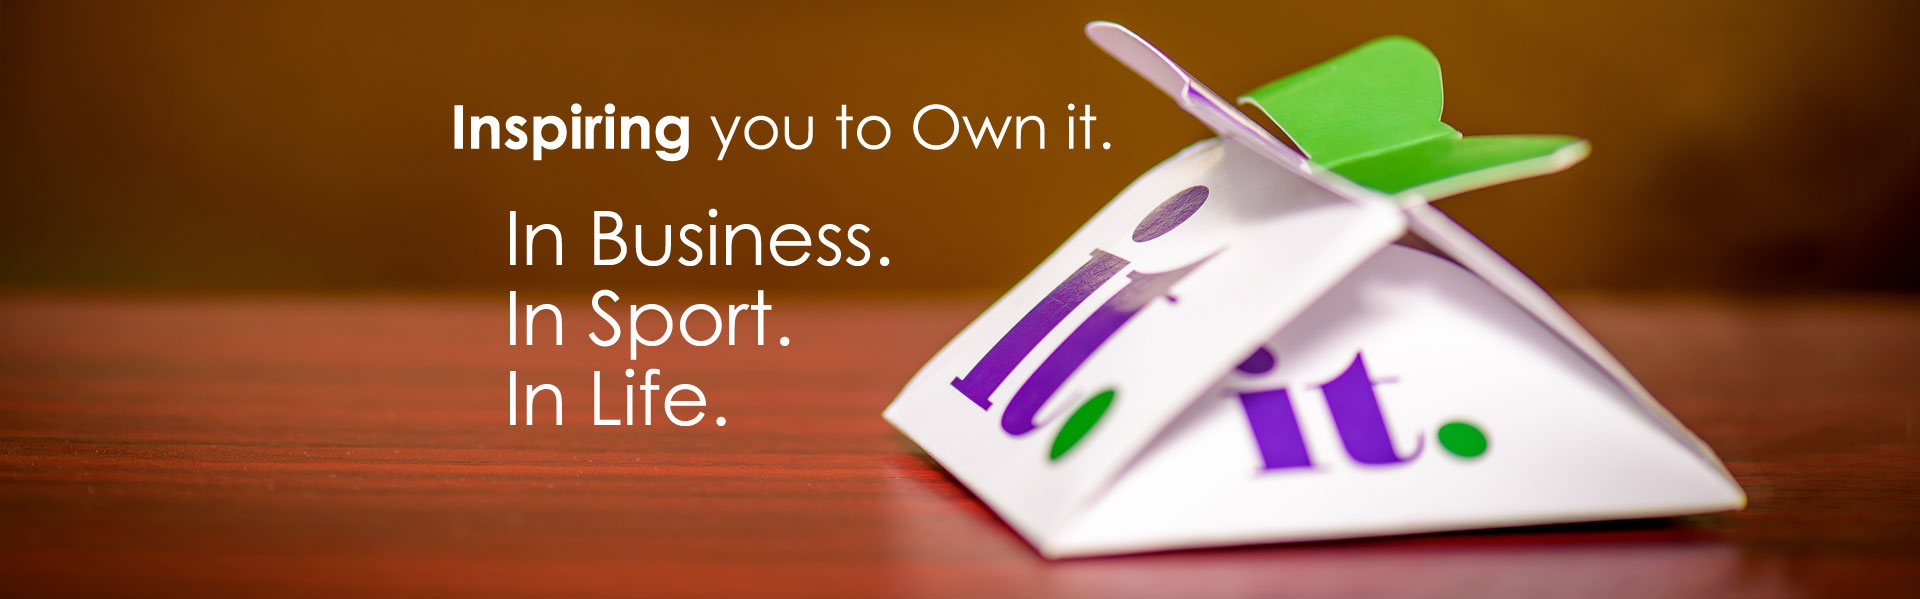 Inspiring you to Own It - In Business, In Sport, In Life